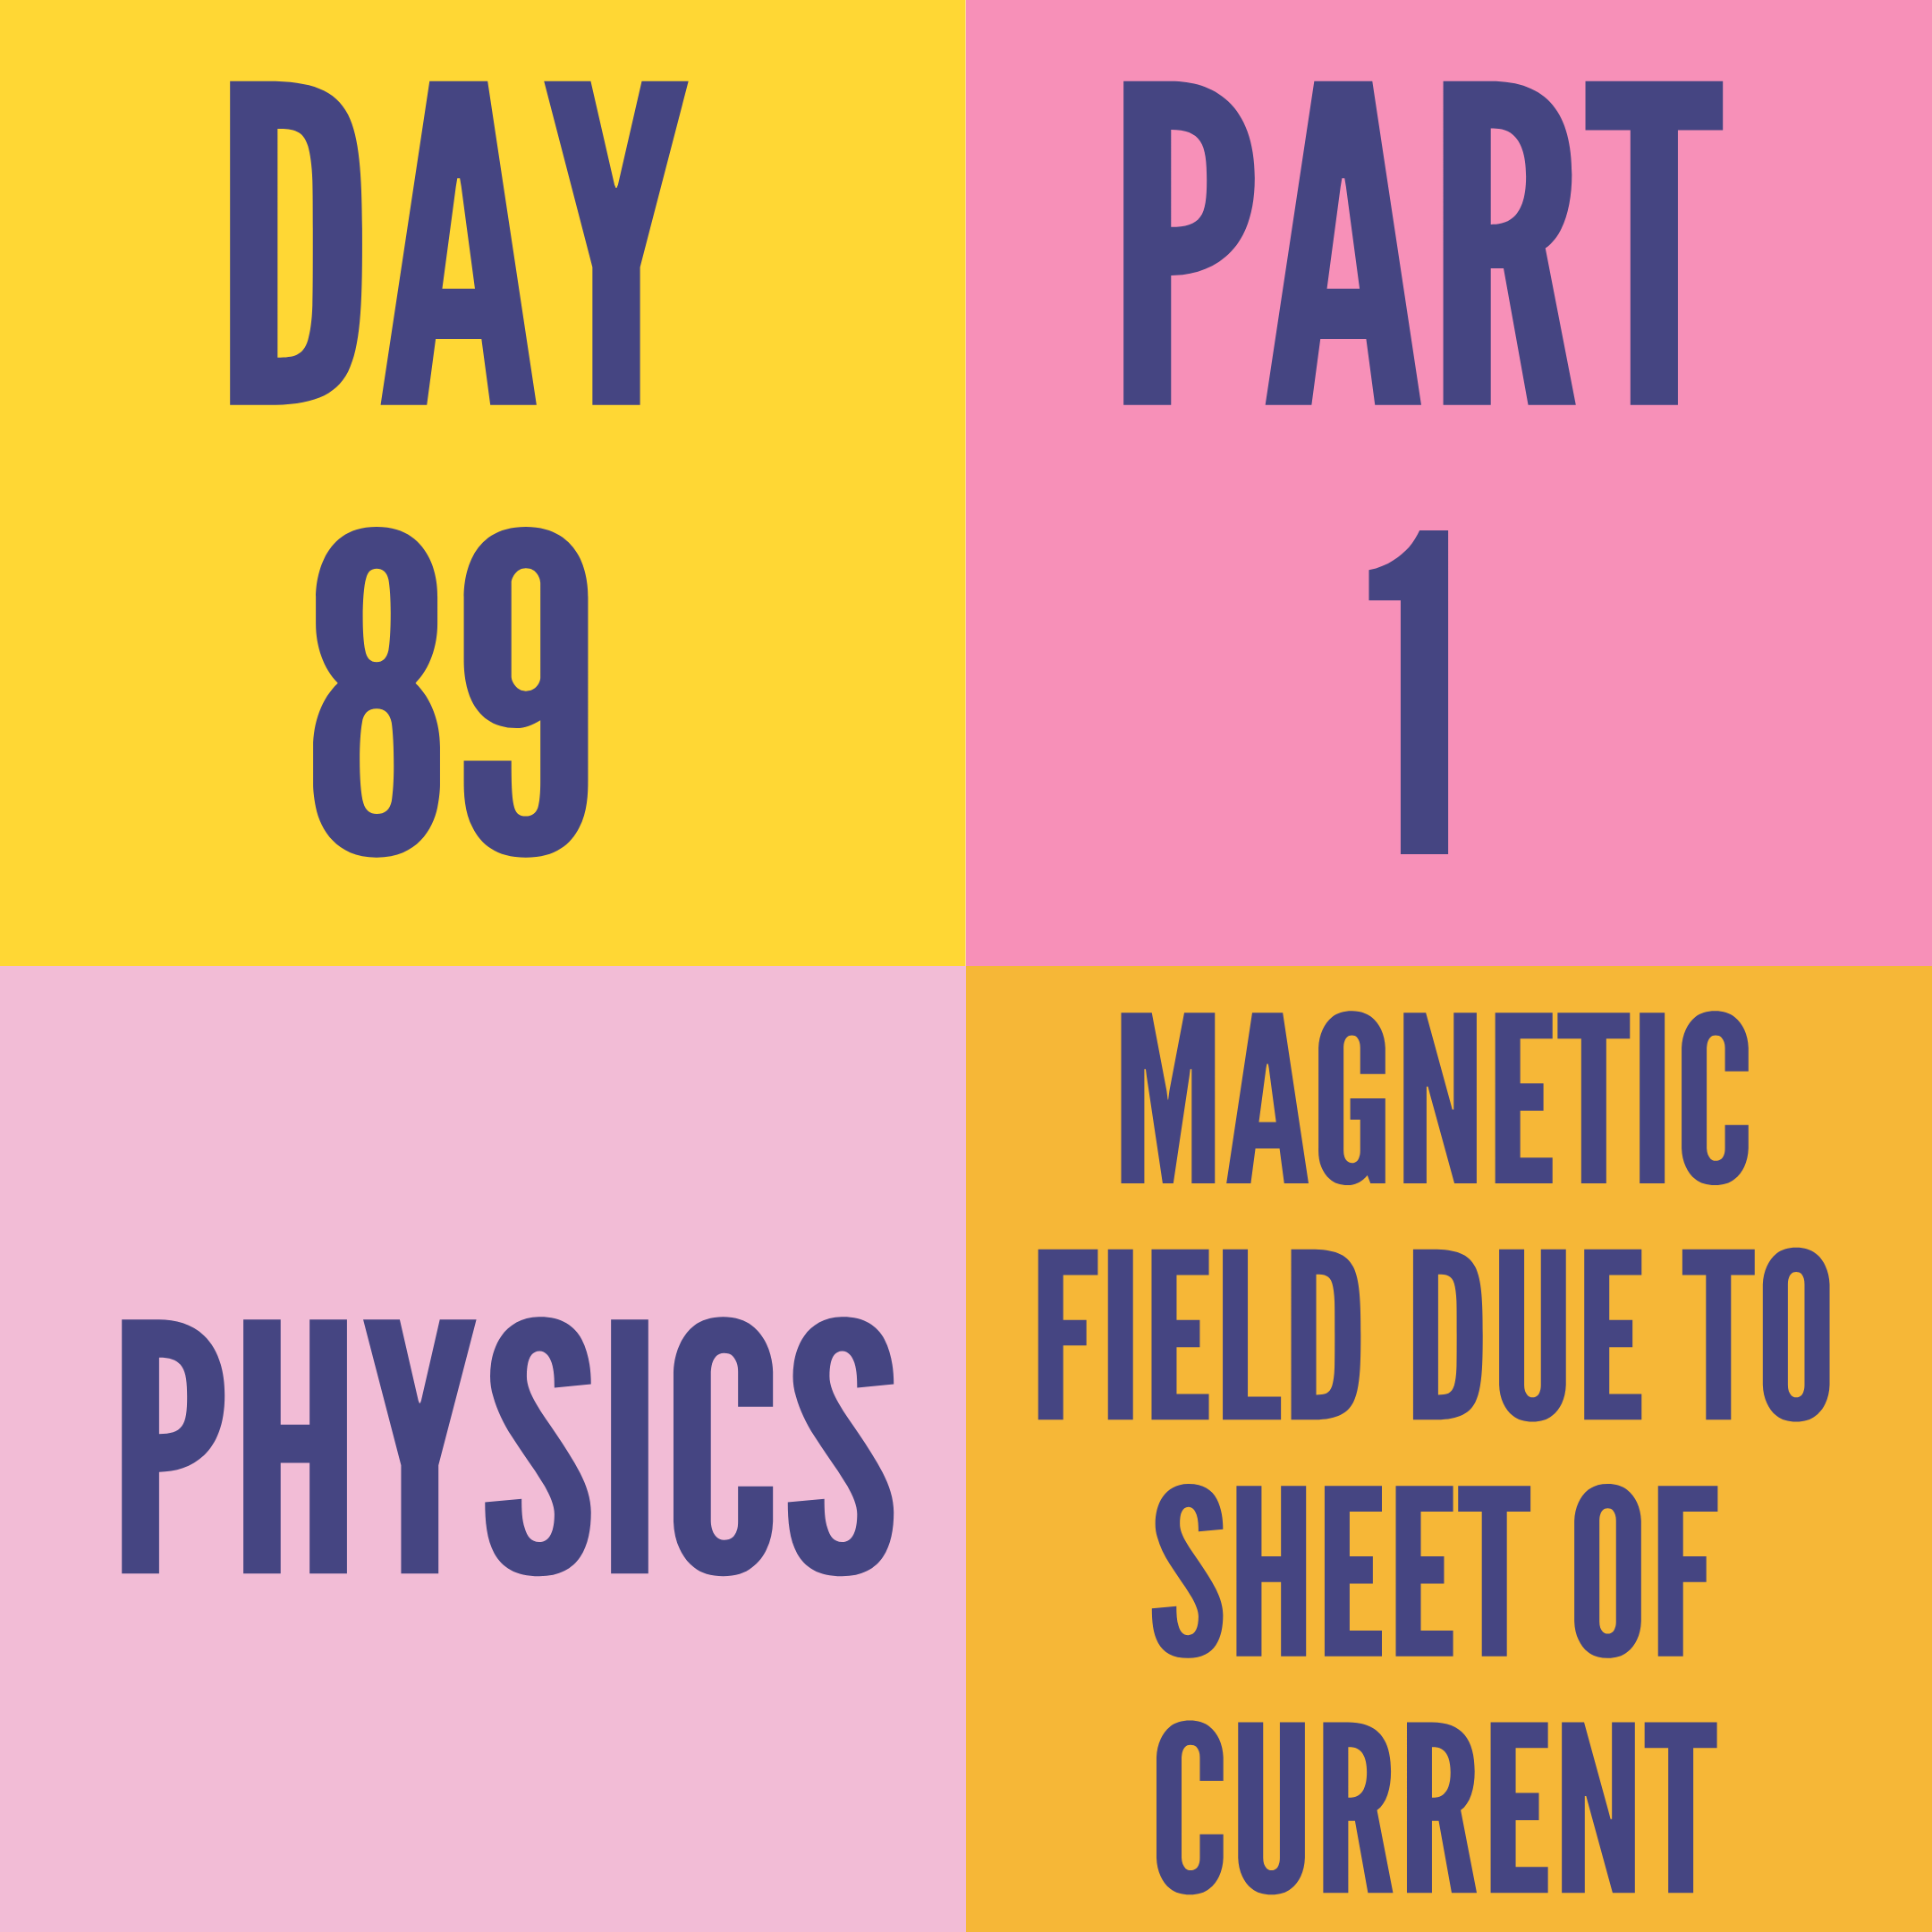 DAY-89 PART-1 MAGNETIC FIELD DUE TO SHEET OF CURRENT